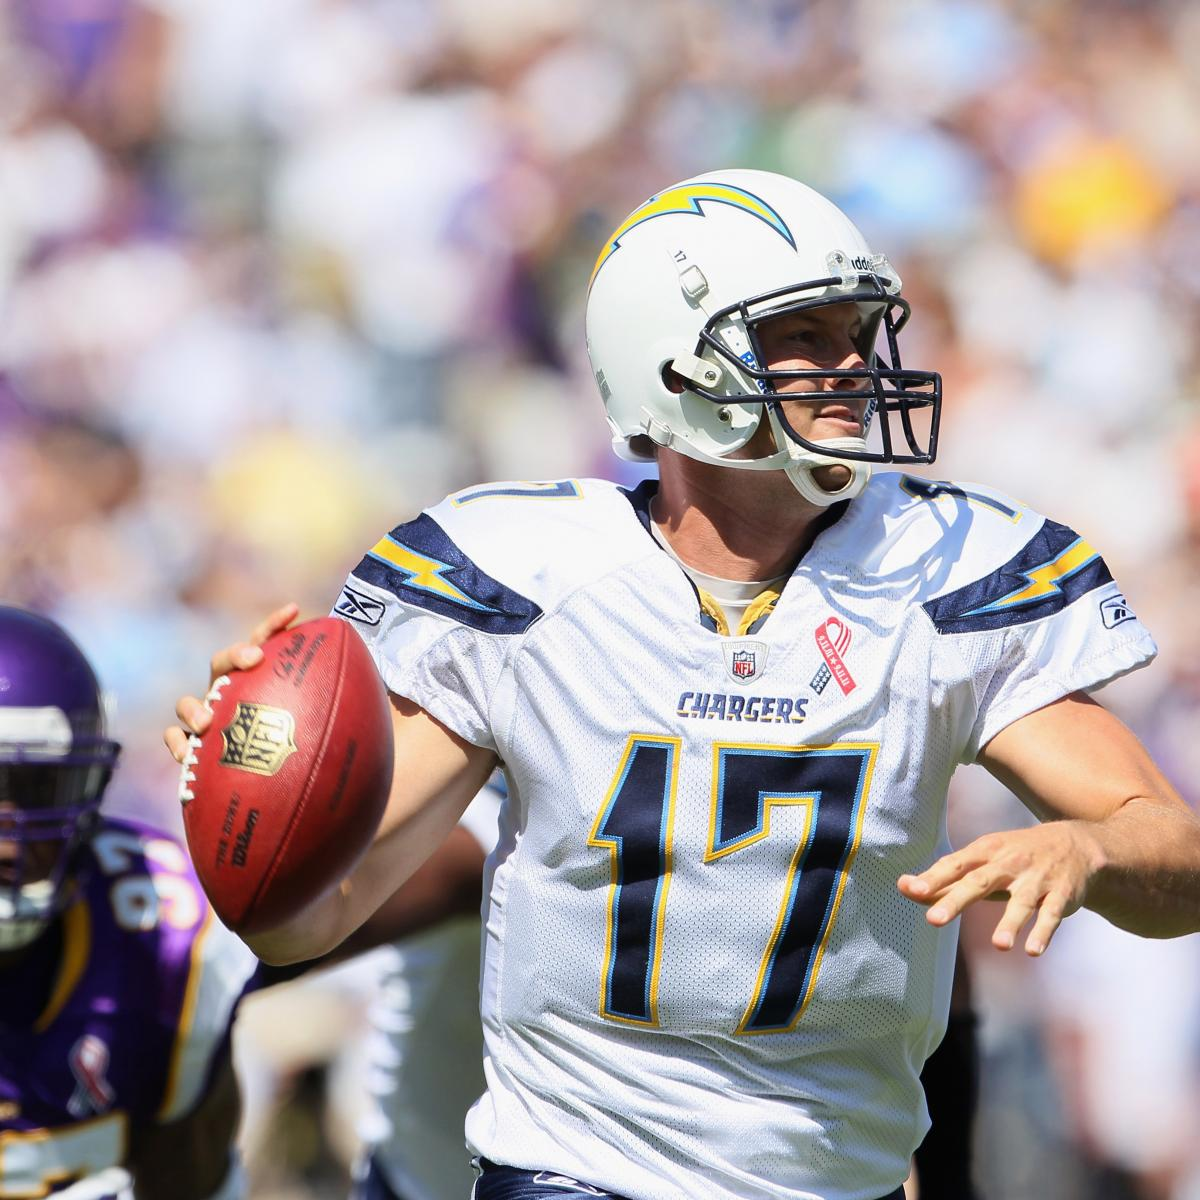 San Diego Chargers Broadcast: Chargers Vs. Vikings: TV Schedule, Live Stream, Radio